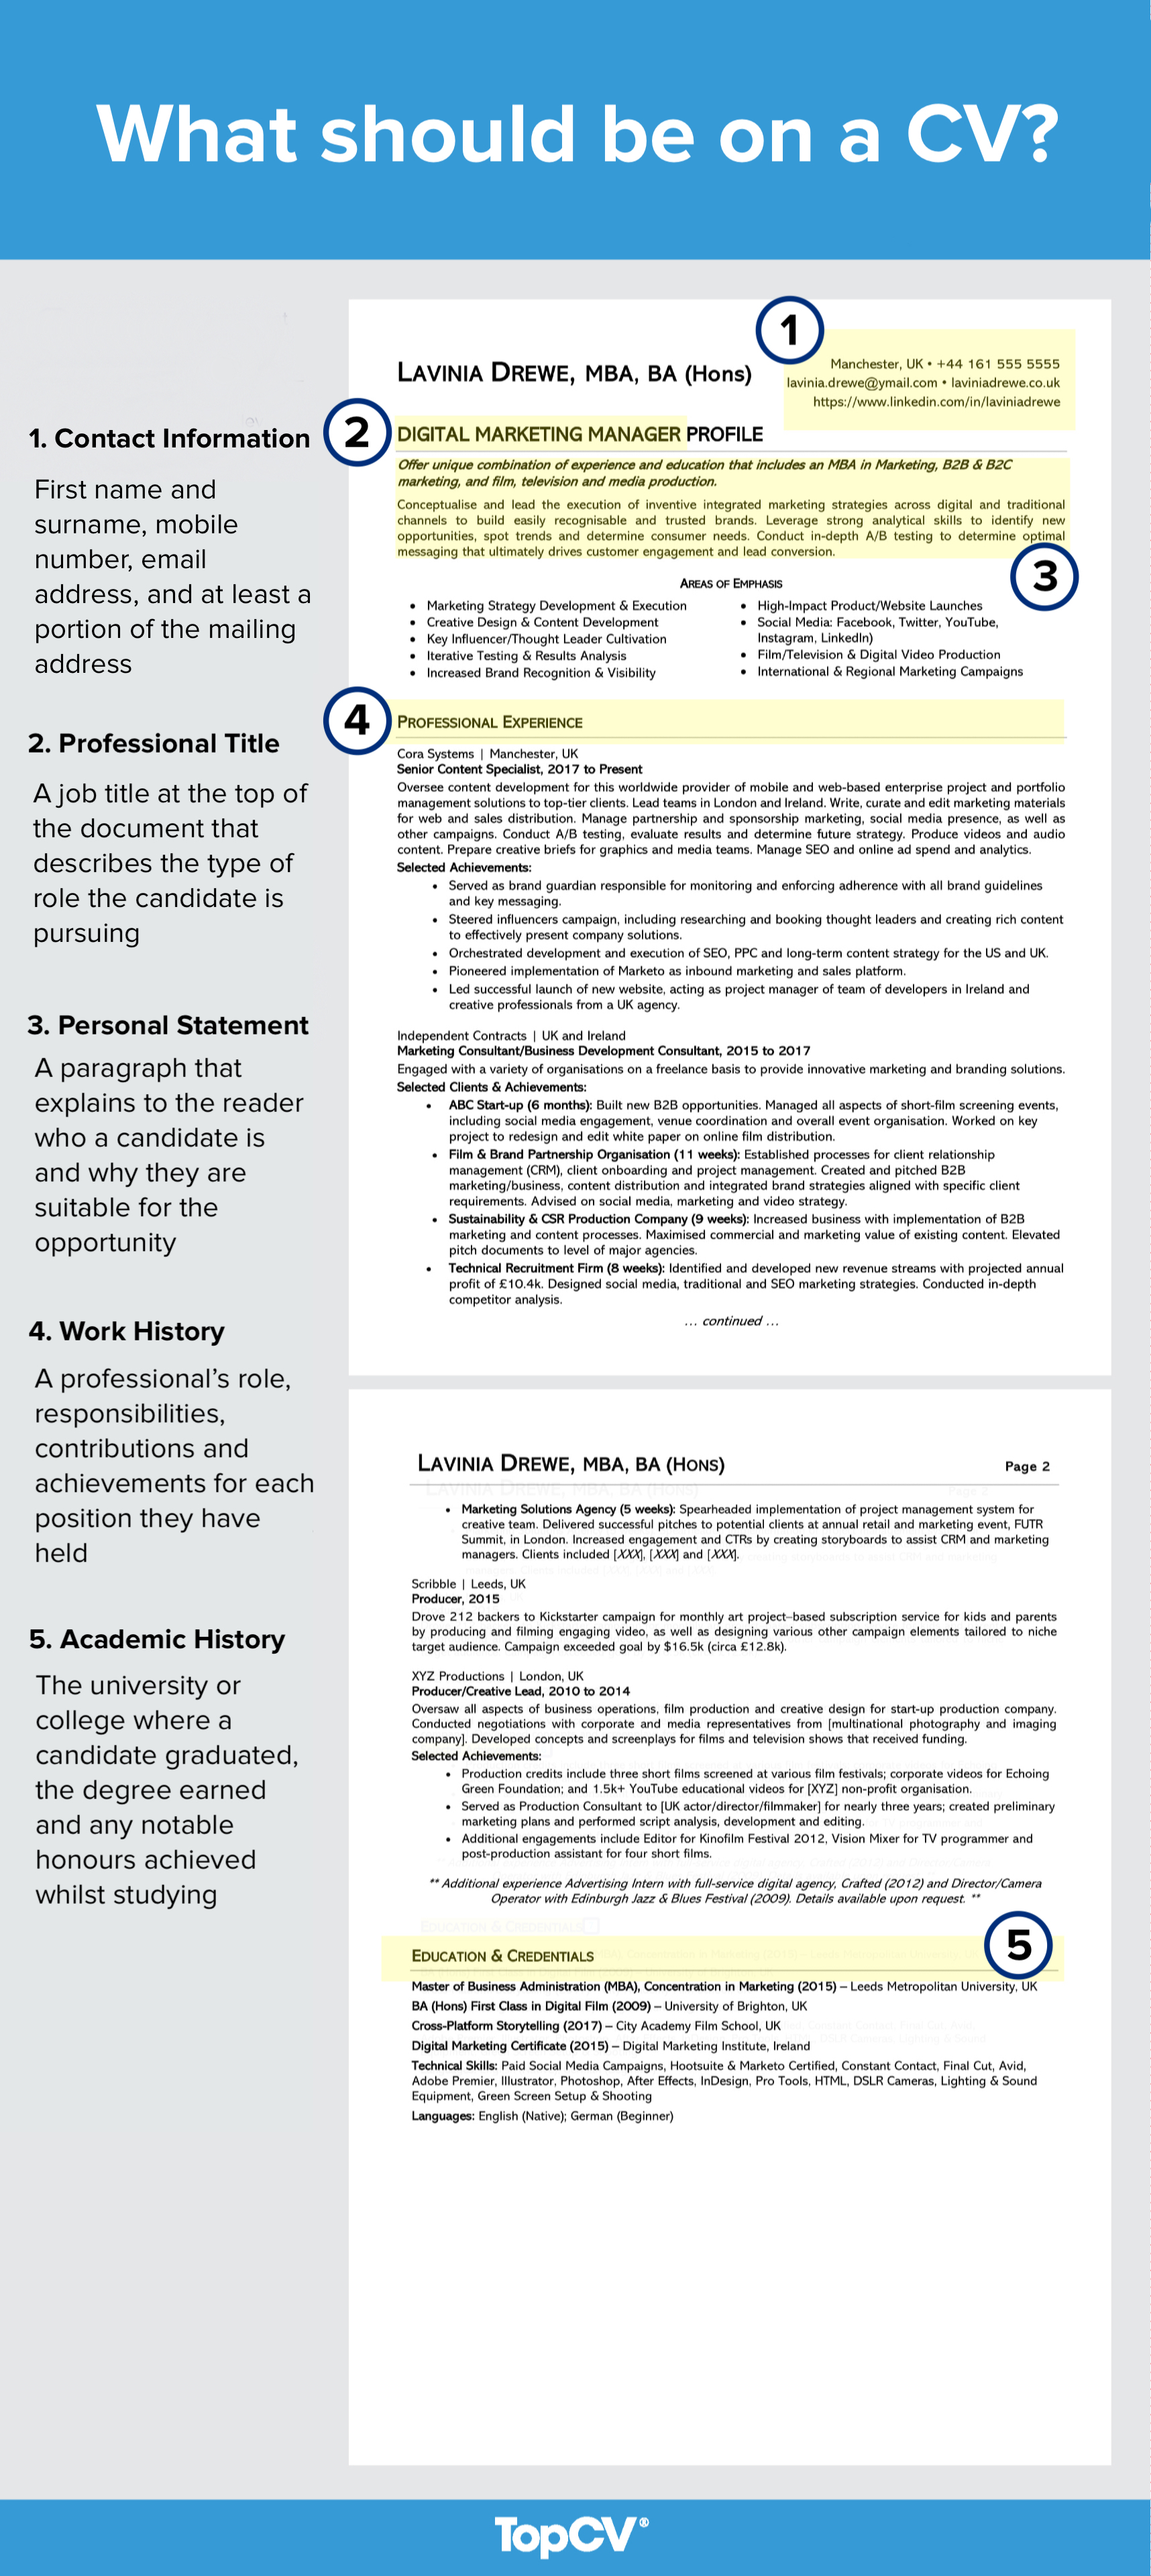 A CV for a mid level marketing manager with all of the essential components documented. Every CV should have contact information, a professional title, a personal statement, work history and academic history.